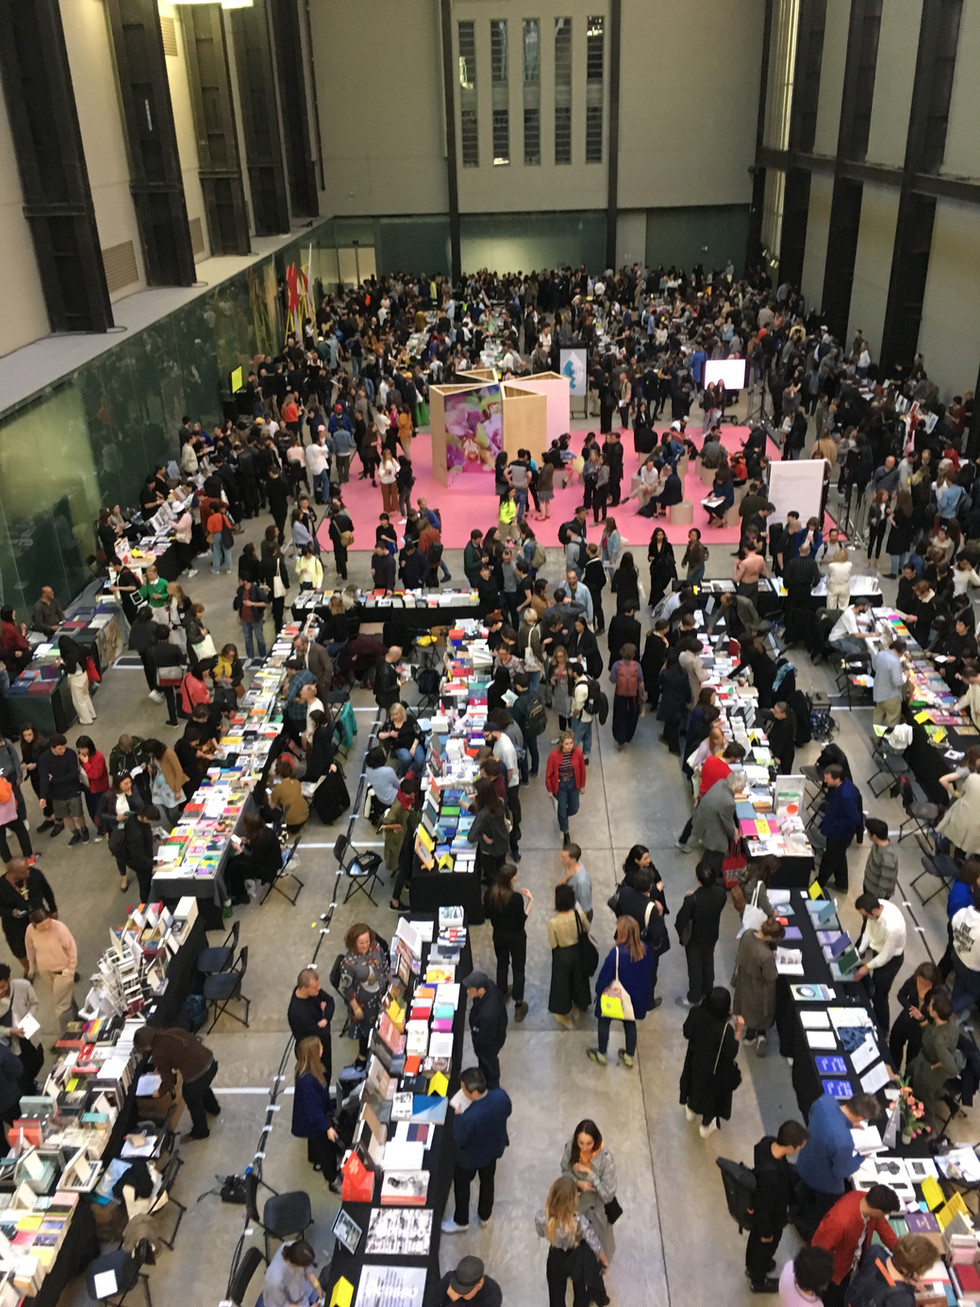 2018 Offprint London, Tate Modern